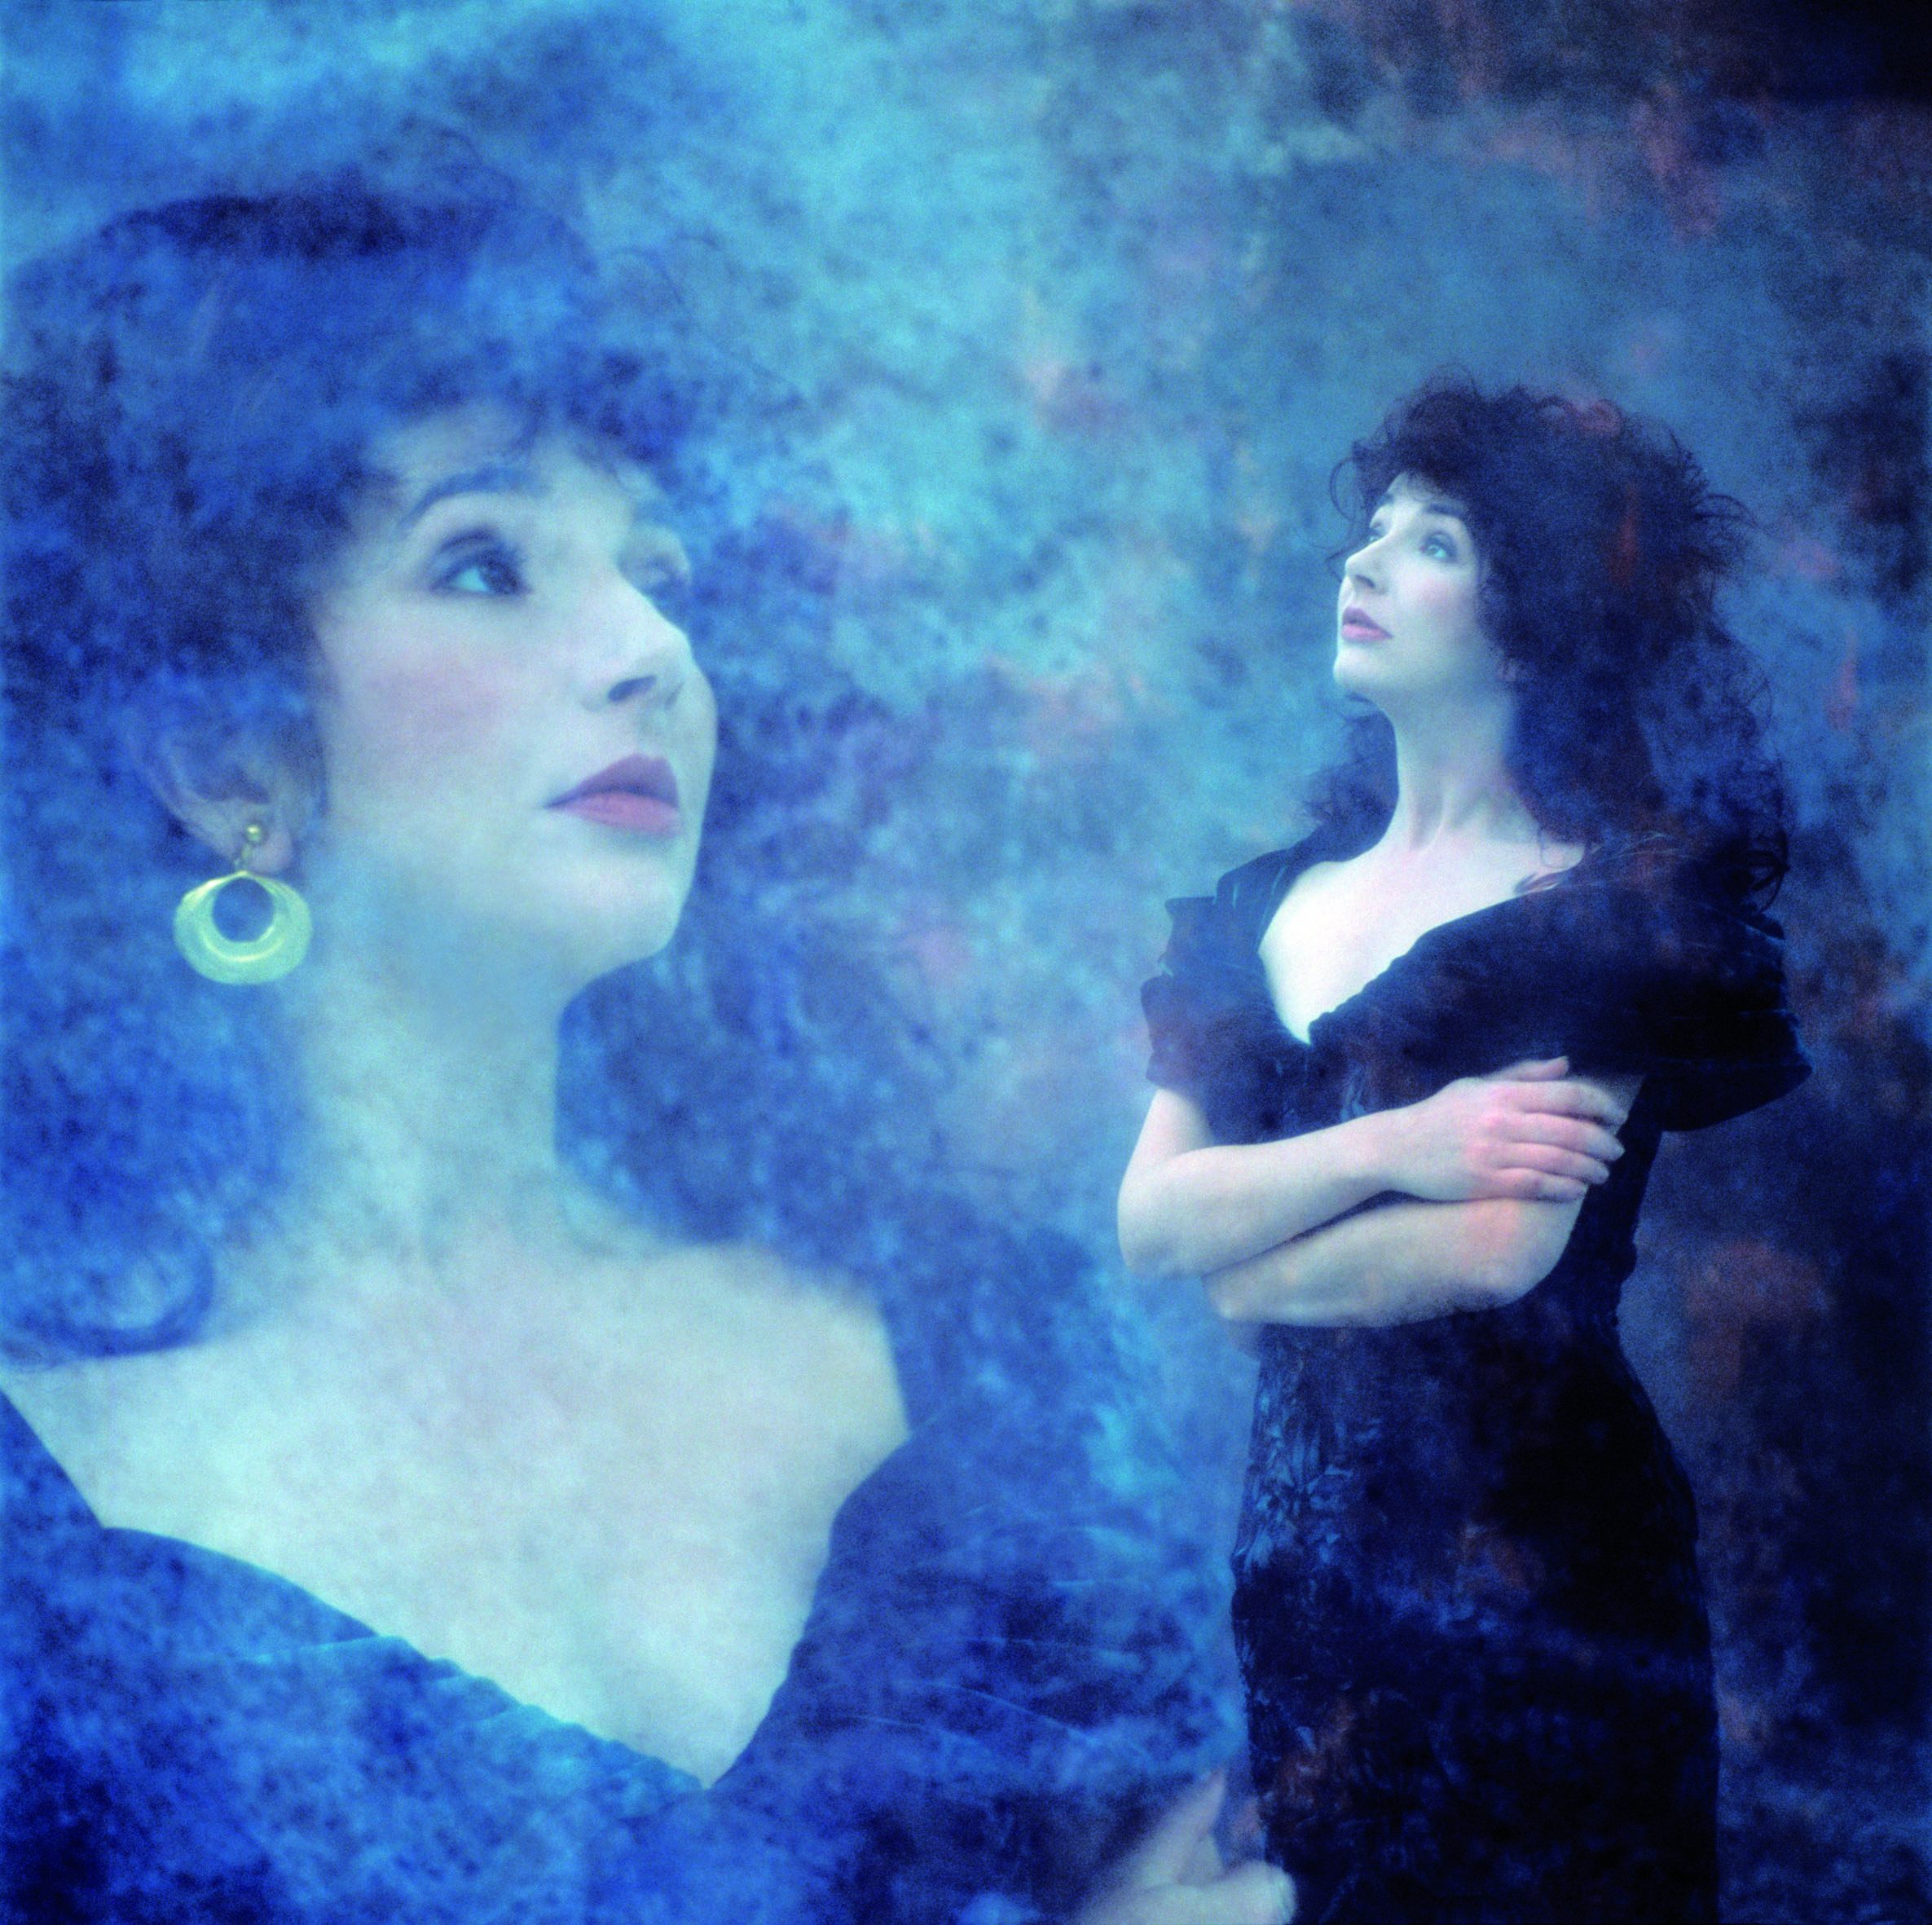 Guido Harari S Portraits Of Kate Bush Document Their Ten